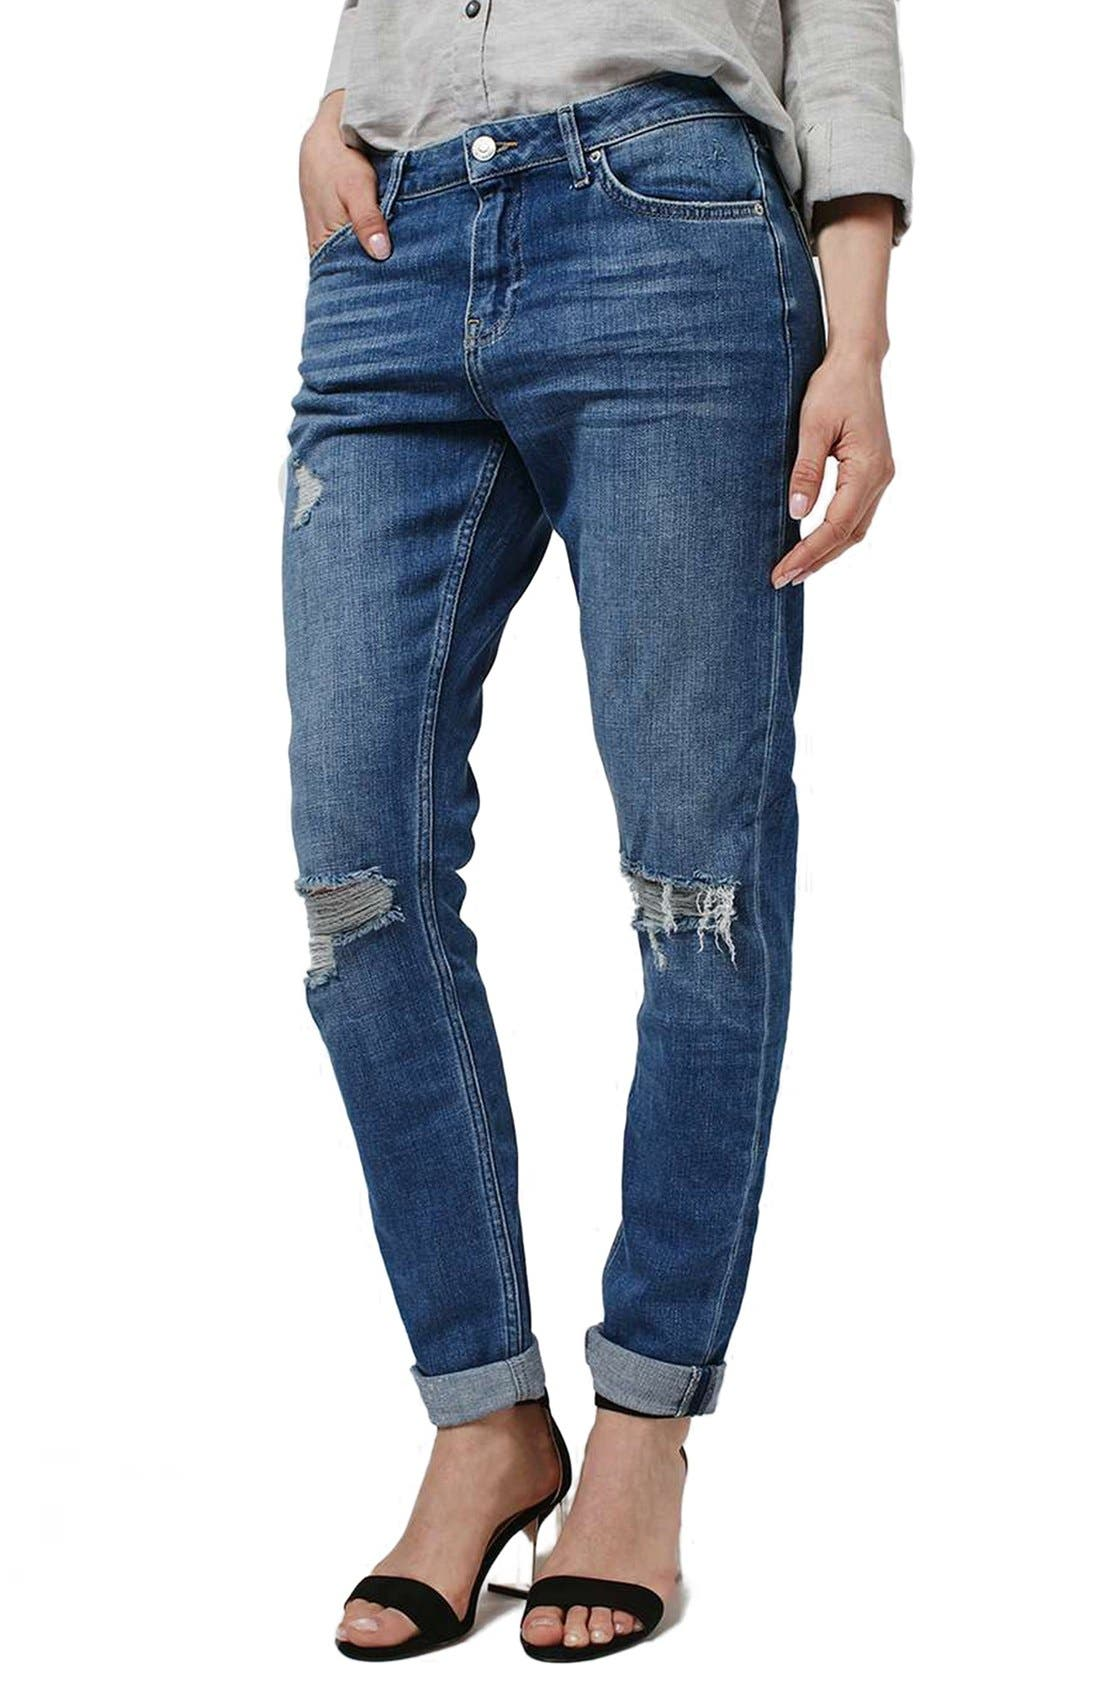 Alternate Image 1 Selected - Topshop 'Lucas' Ripped Boyfriend Jeans